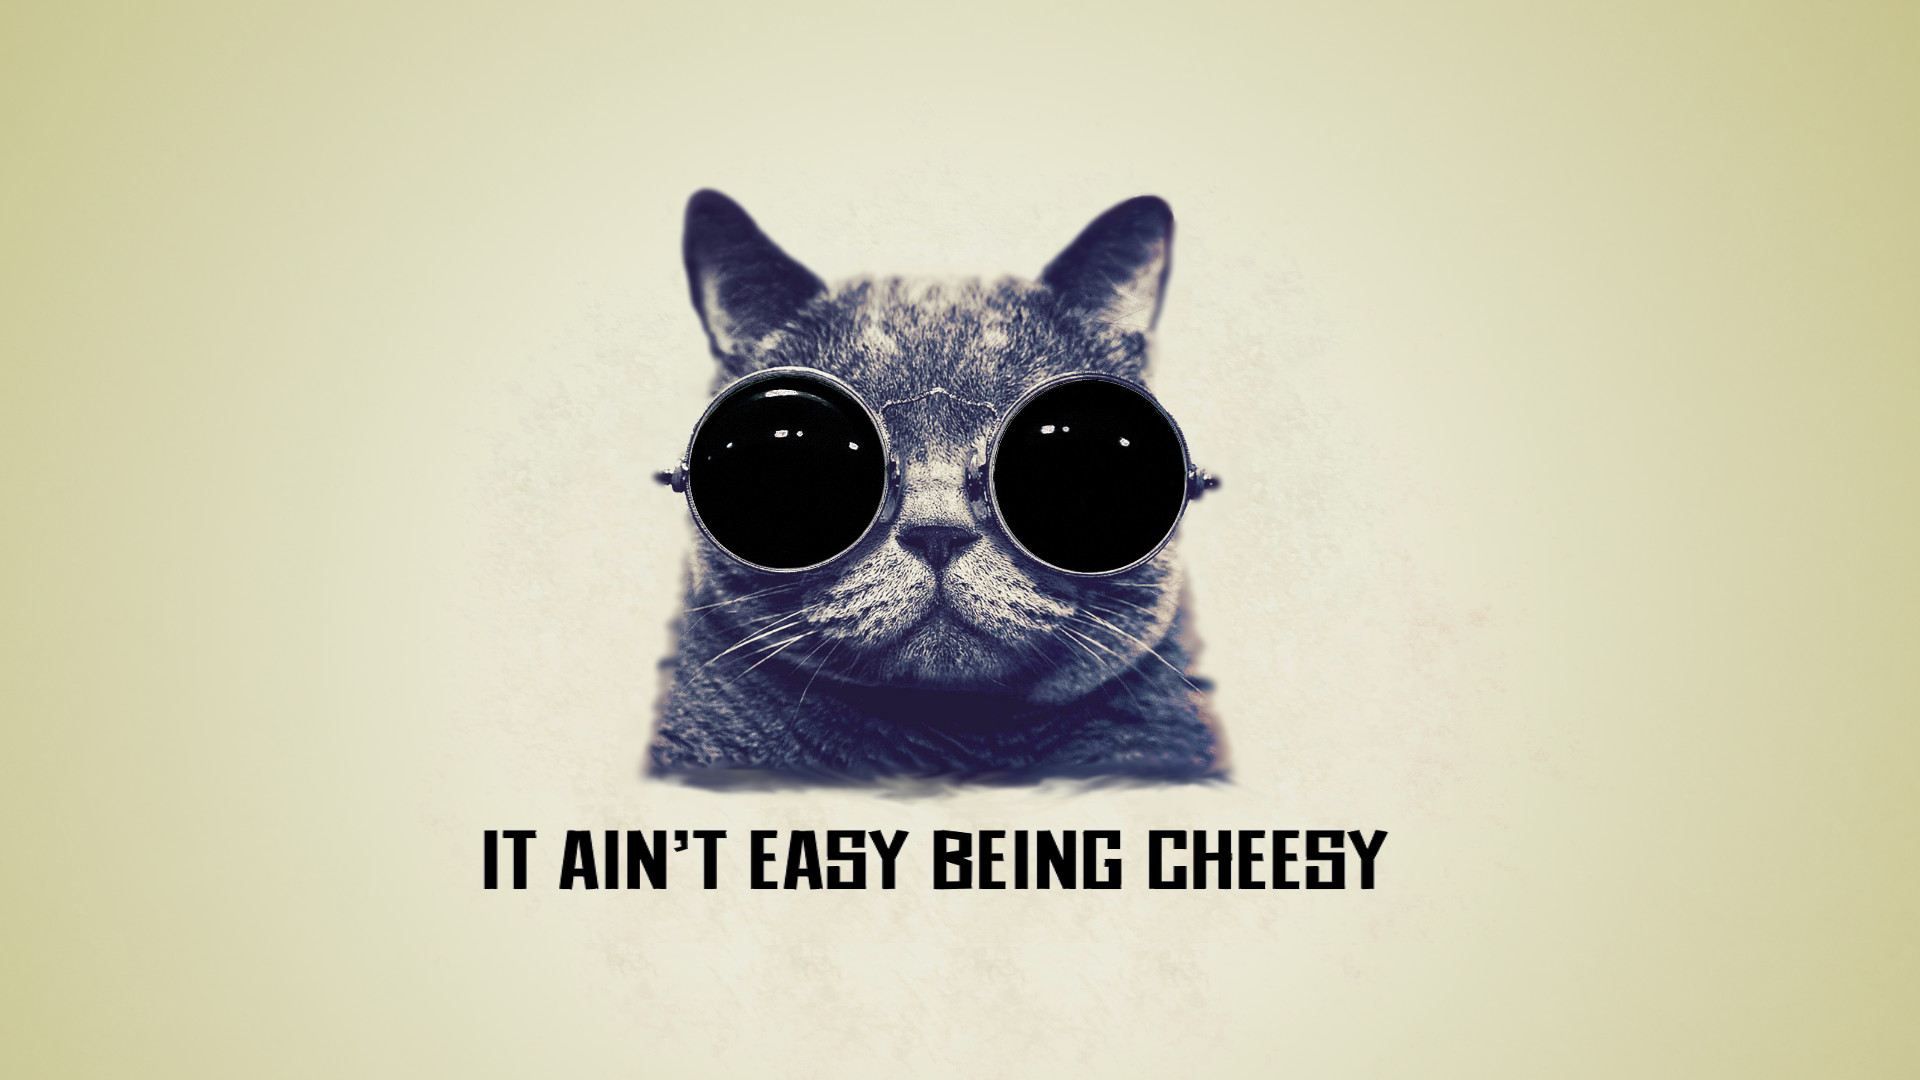 ... It ain't easy being cheesy cool cat wallpaper by saitoukazuma 1920x1080